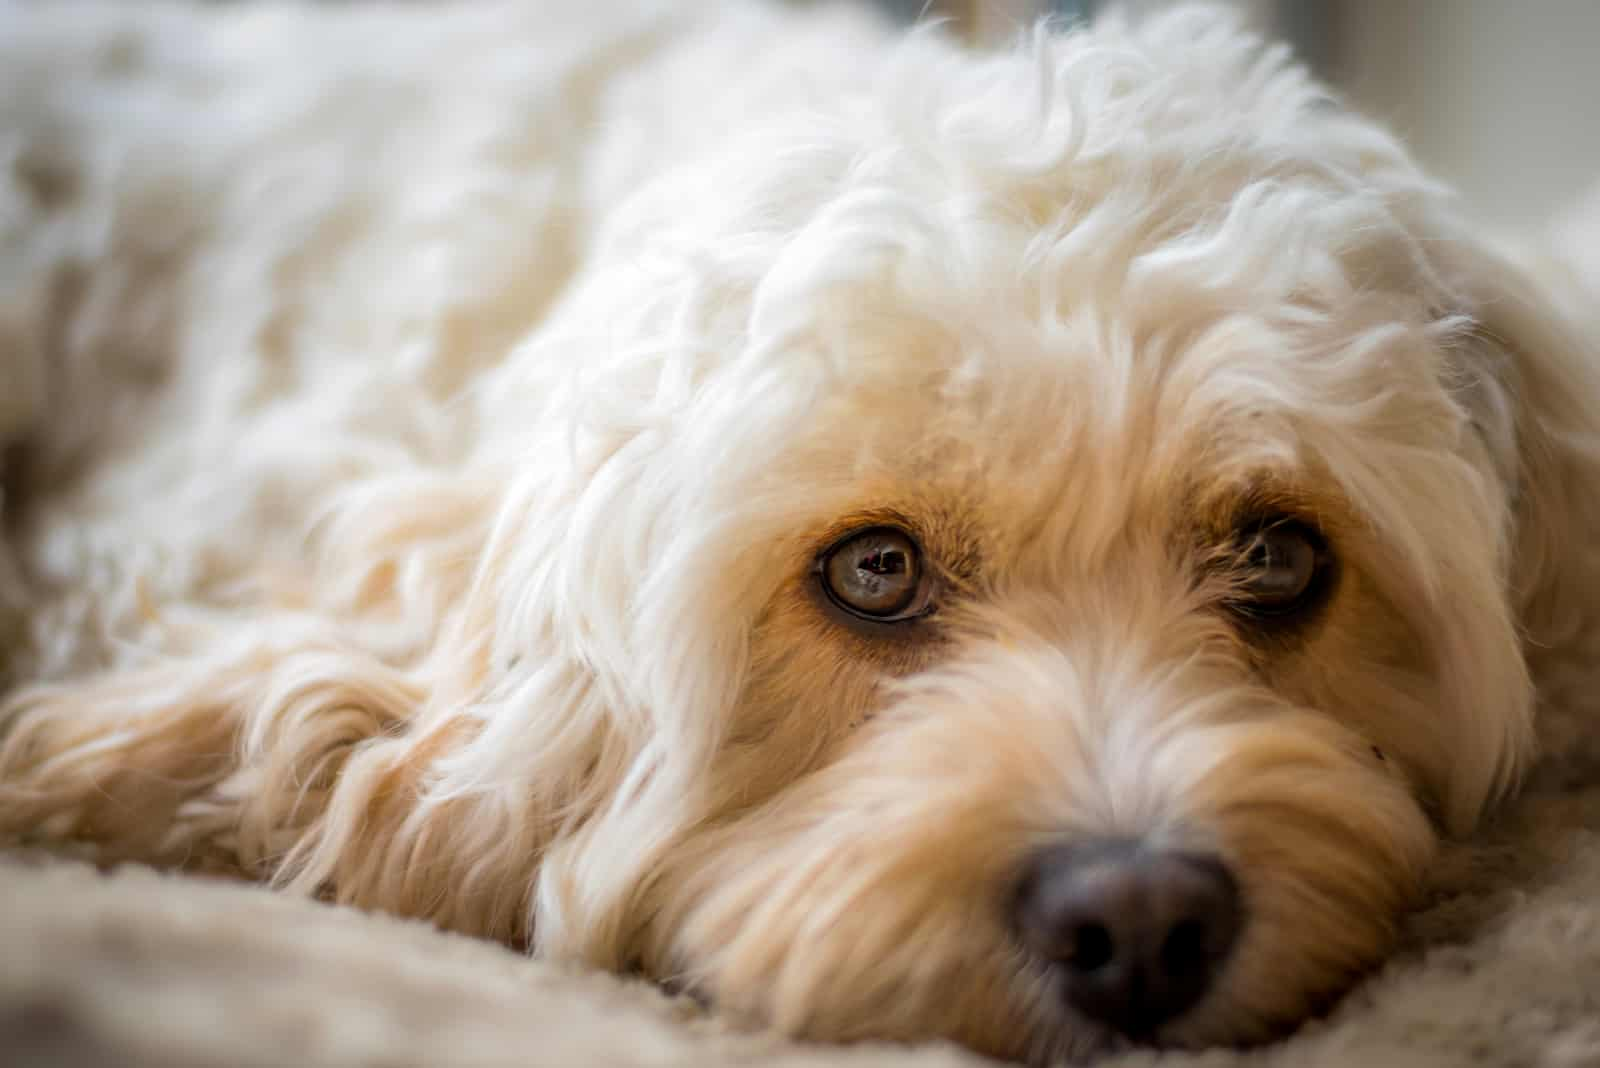 Cavapoo resting on bed